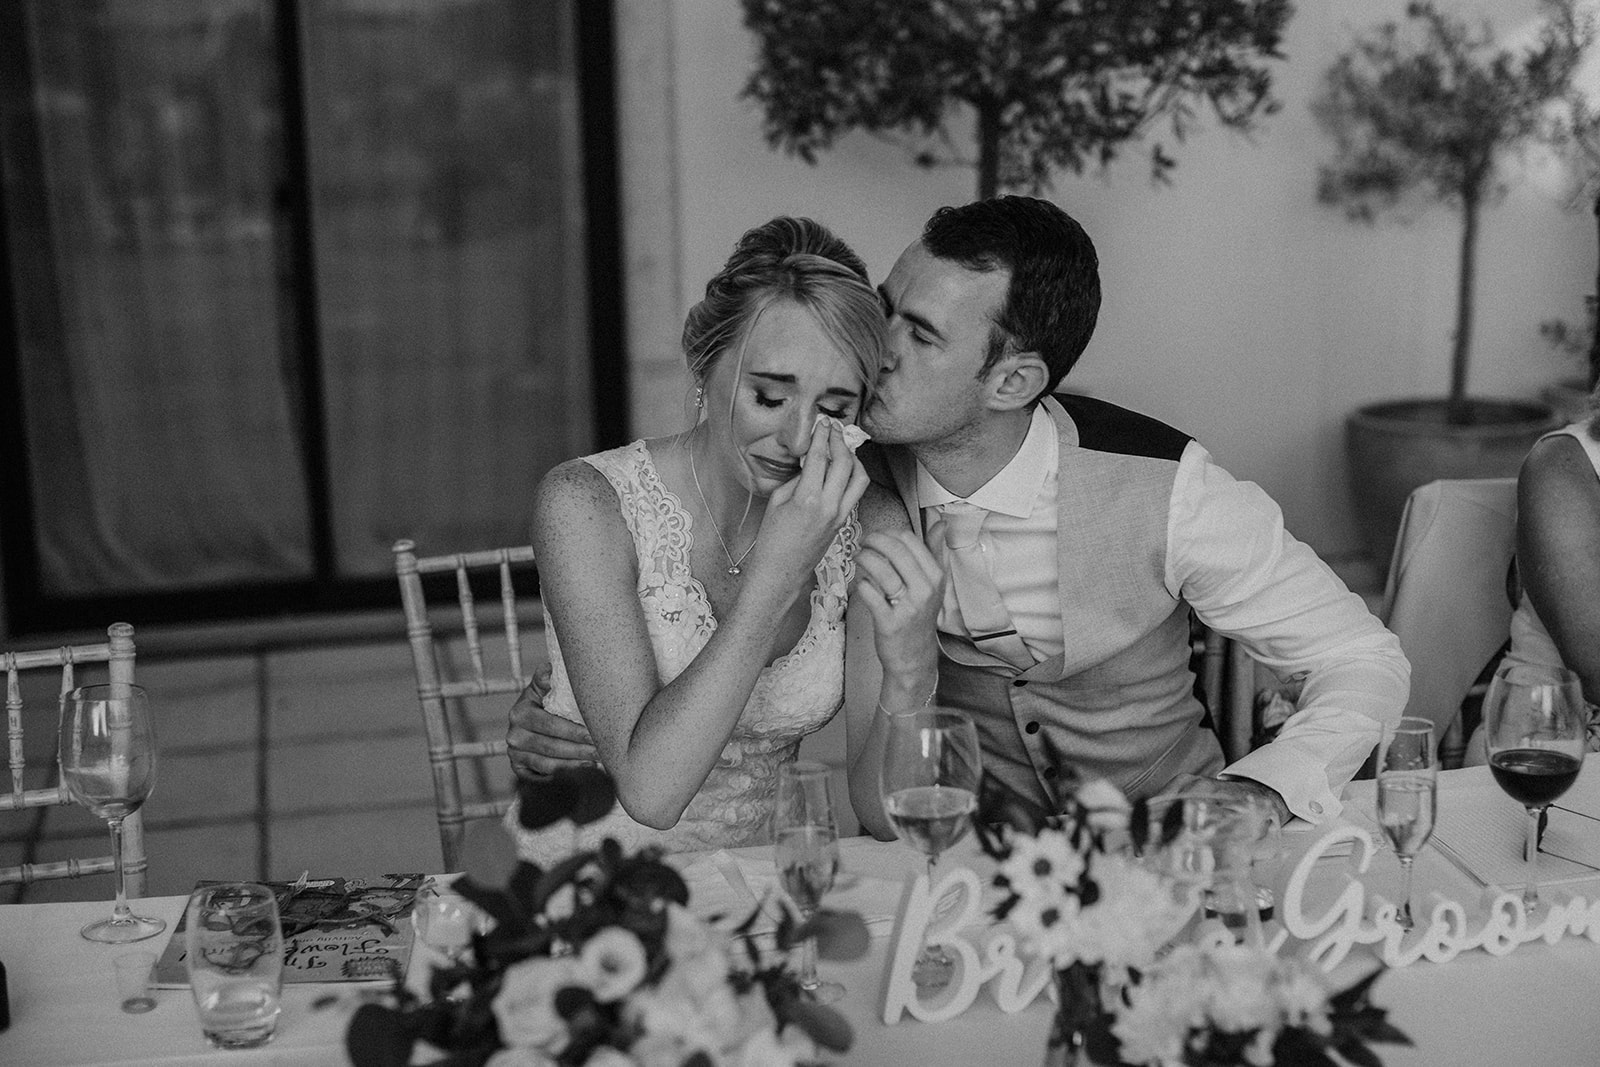 Wedding Photography - Collection 2: 7-9 hours coverage